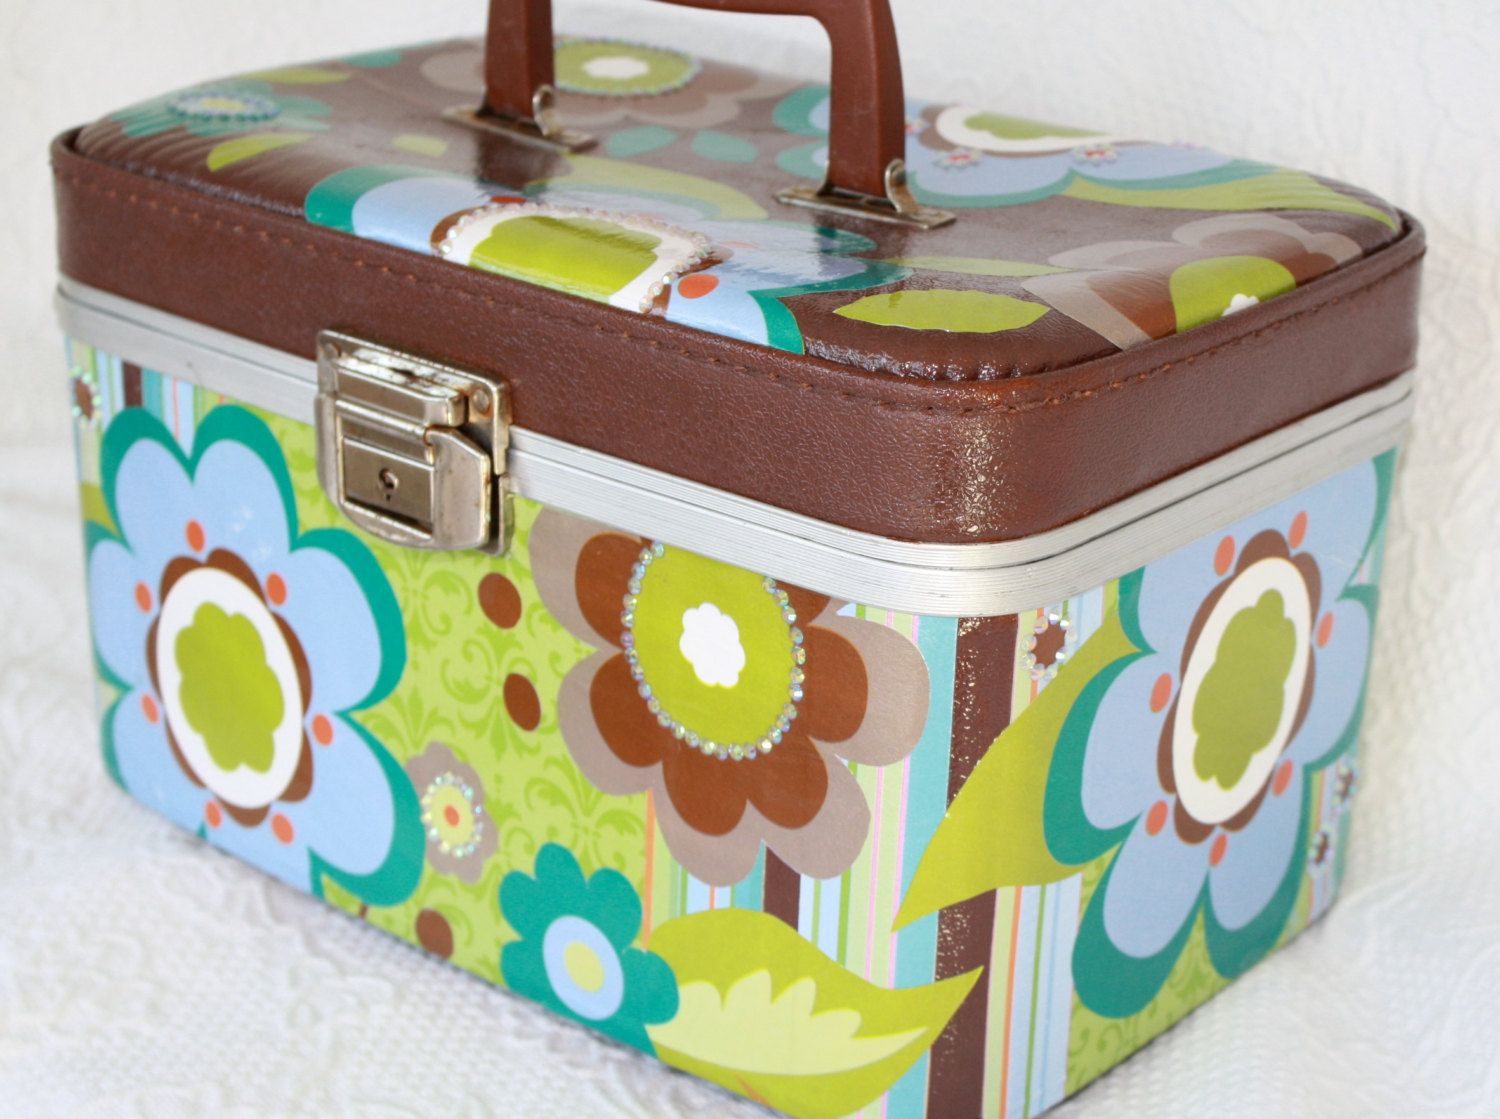 Upcycled Vintage Carry On Case Train Case Make Up Case Luggage by My Cozy Cottage Designs. $70.00, via Etsy.